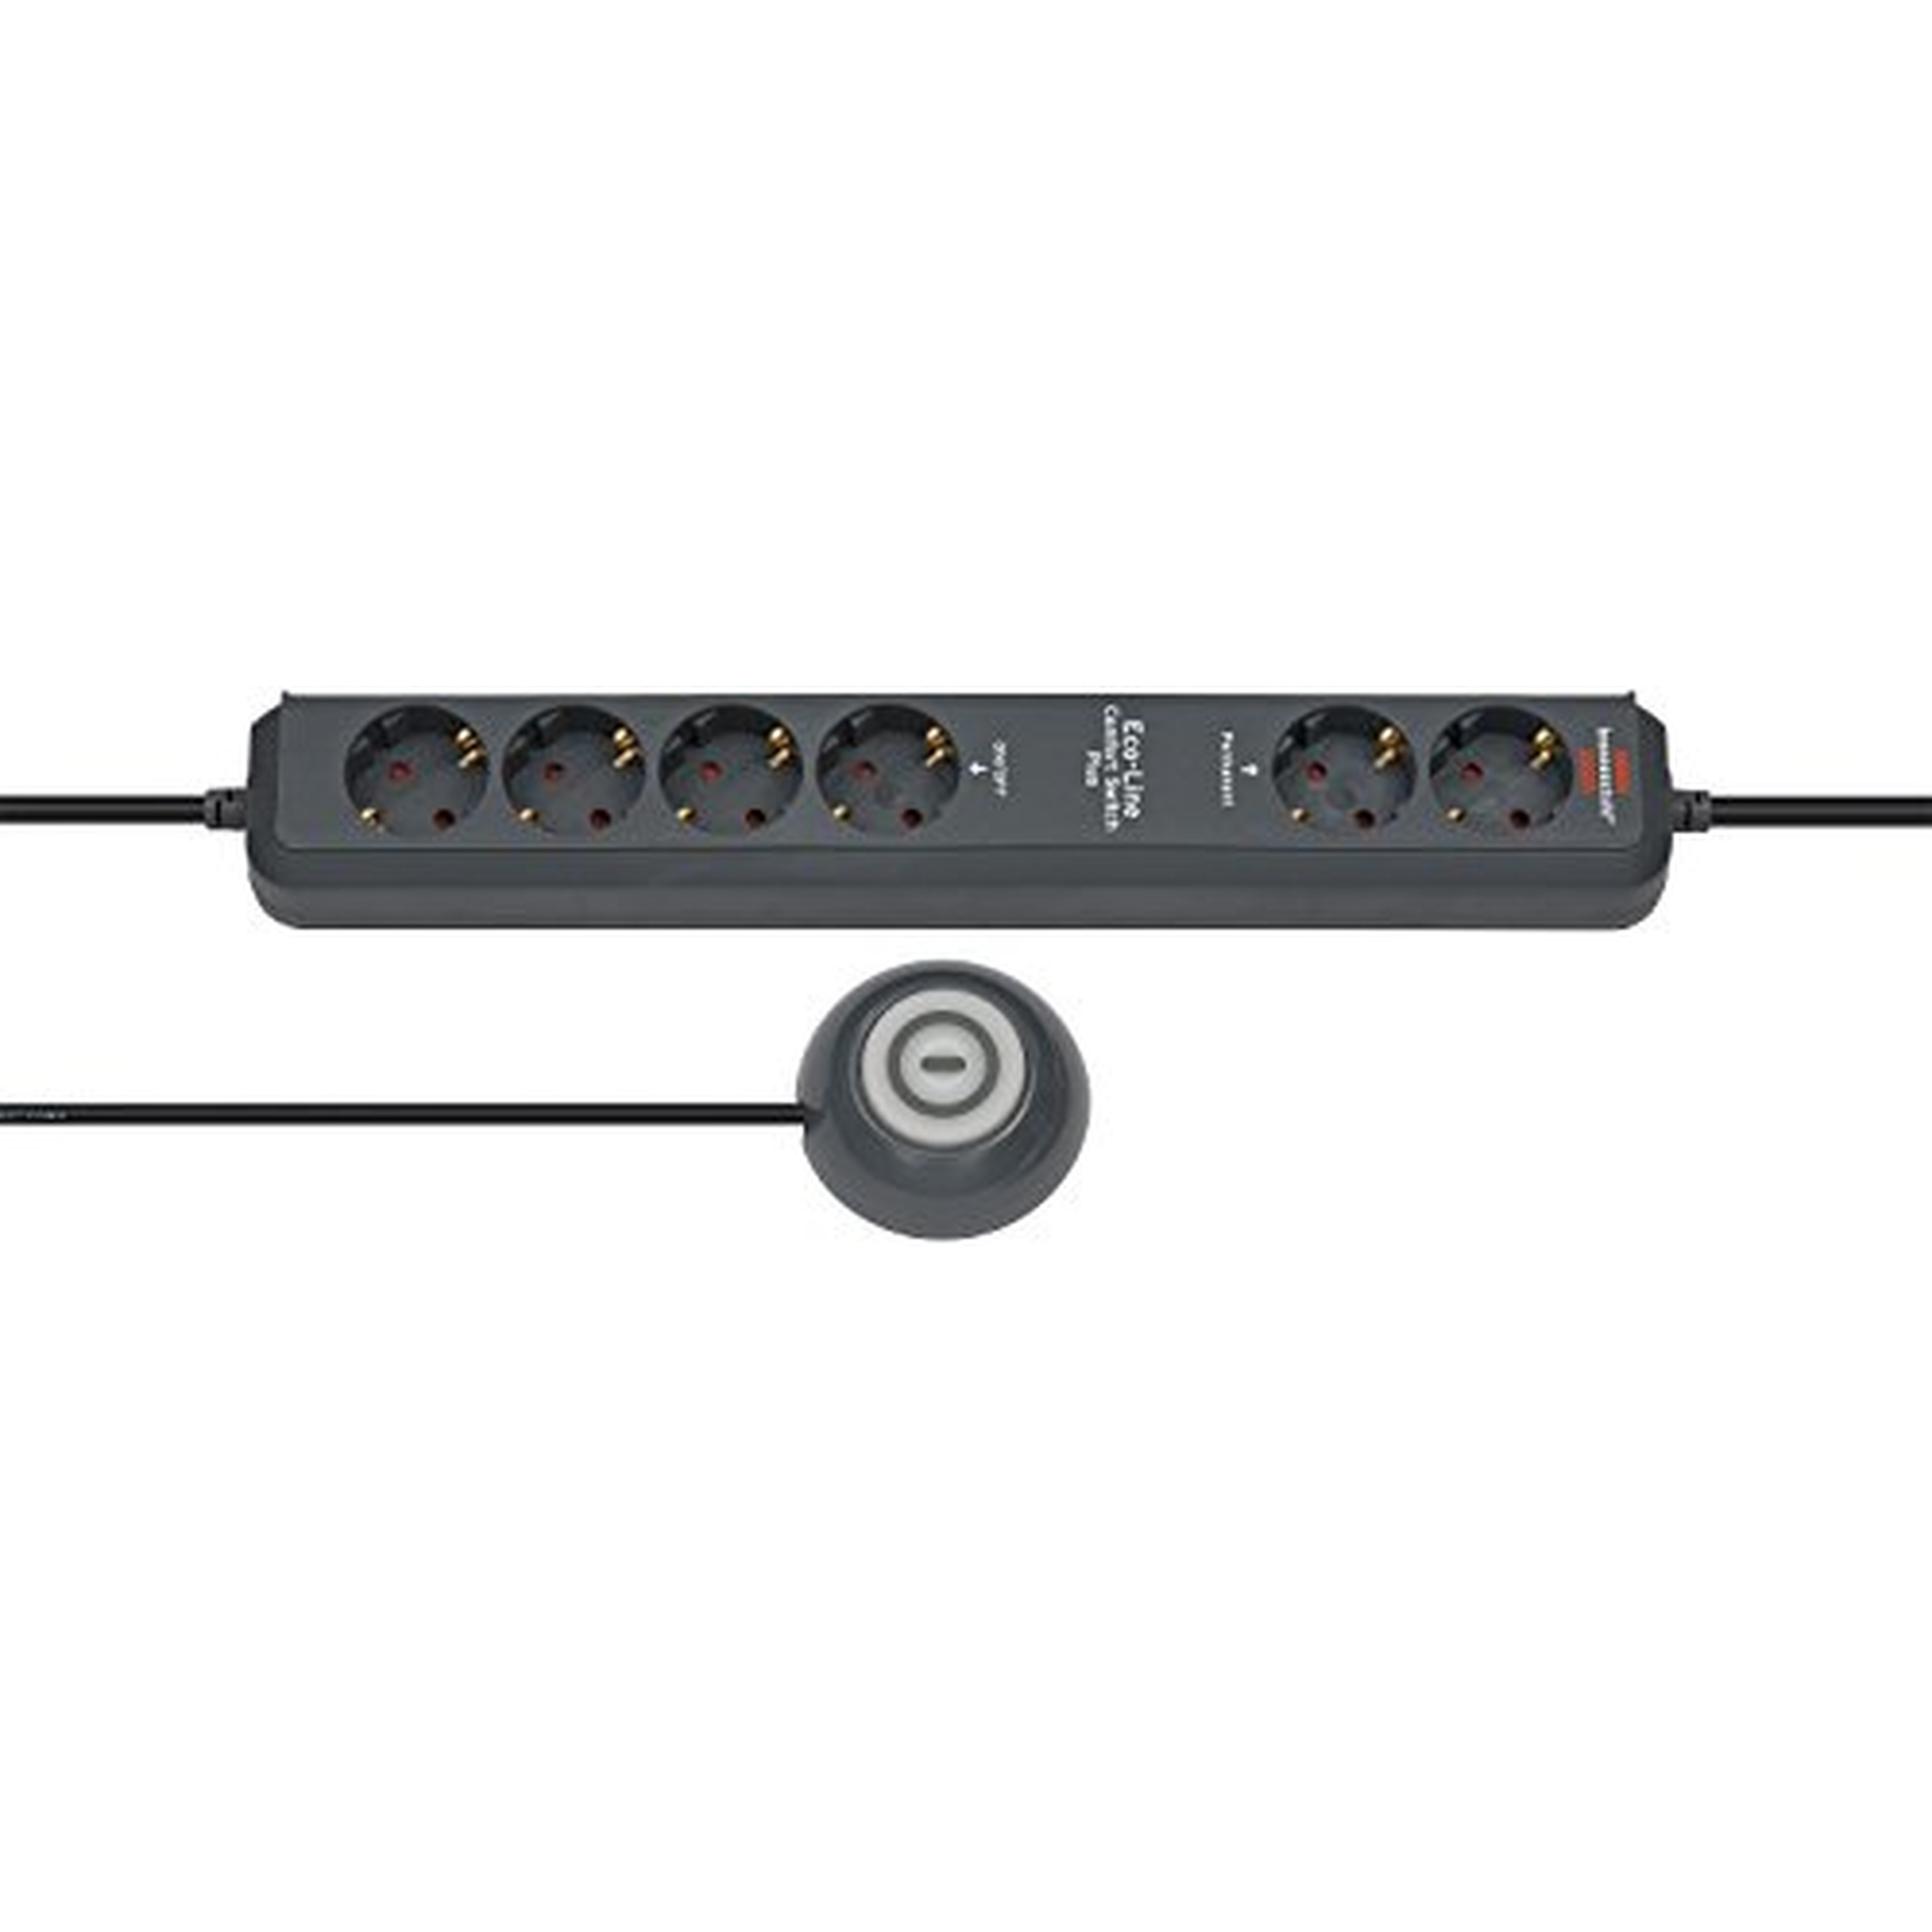 Brennenstuhl Eco-Line Comfort Switch Plus CSP 24, schwarz